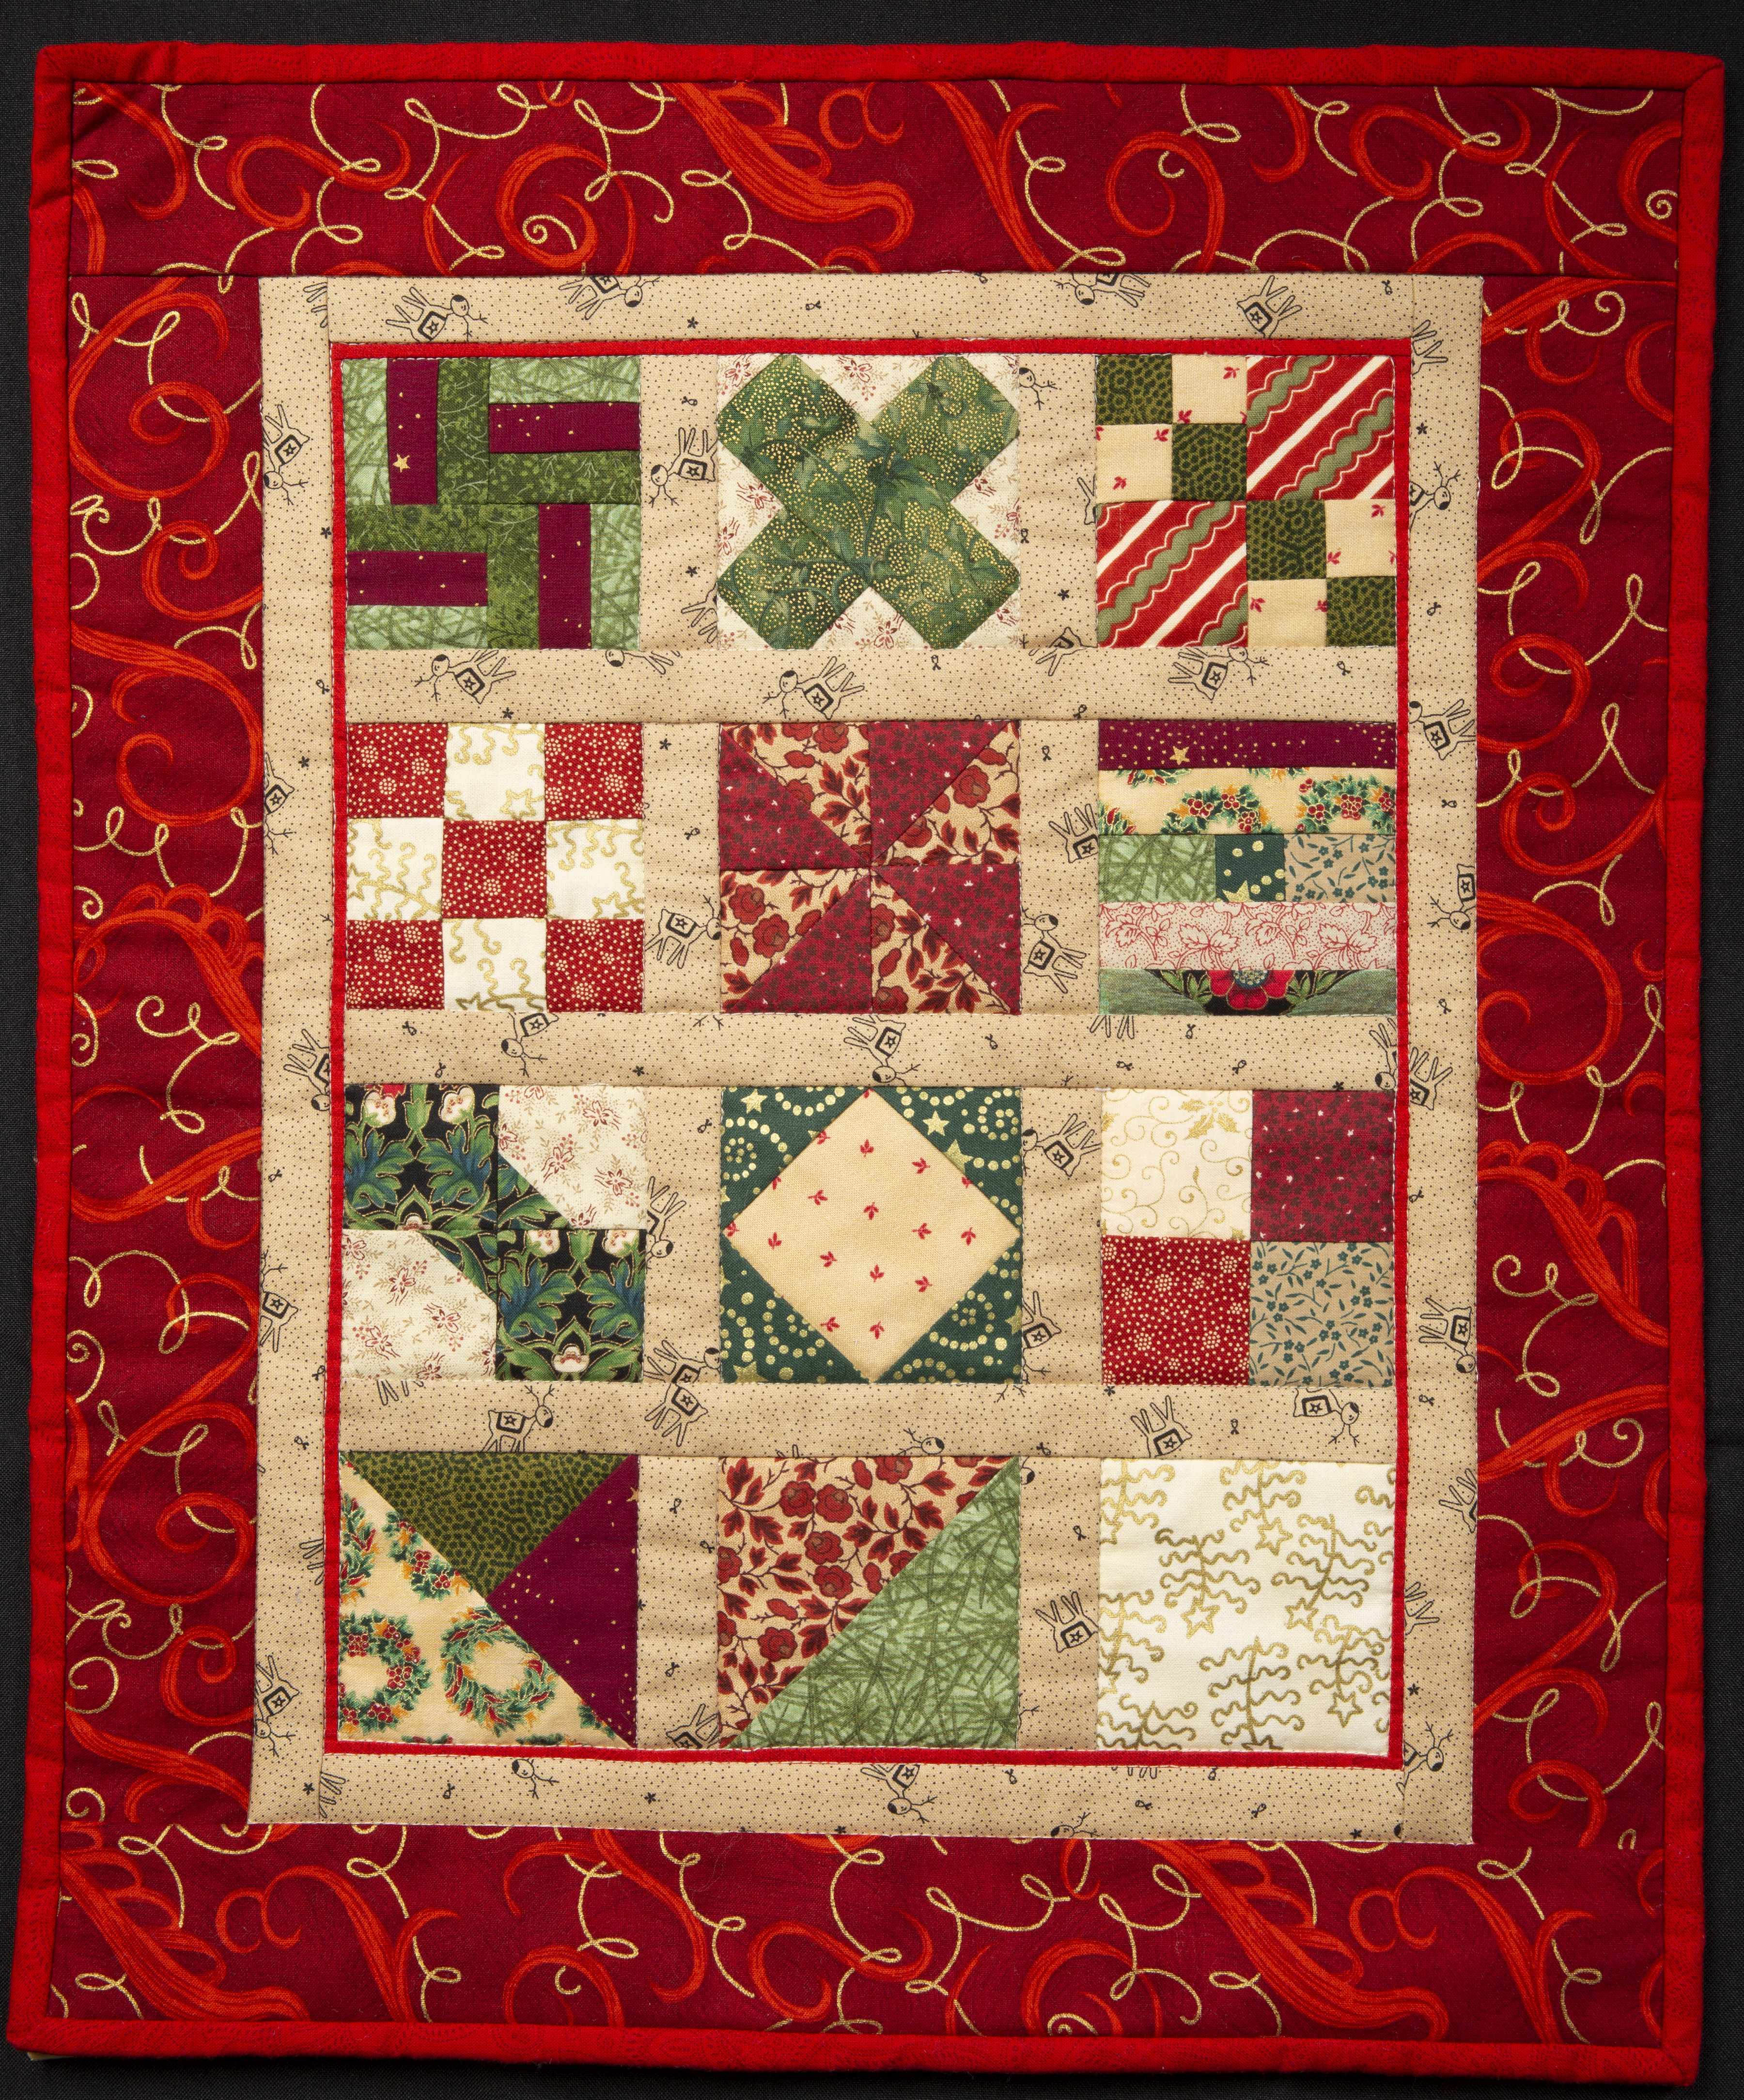 Twelve Days of Christmas - Quilt featuring festive red material used for the border with 12 blocks in the center made from several different patterned fabrics